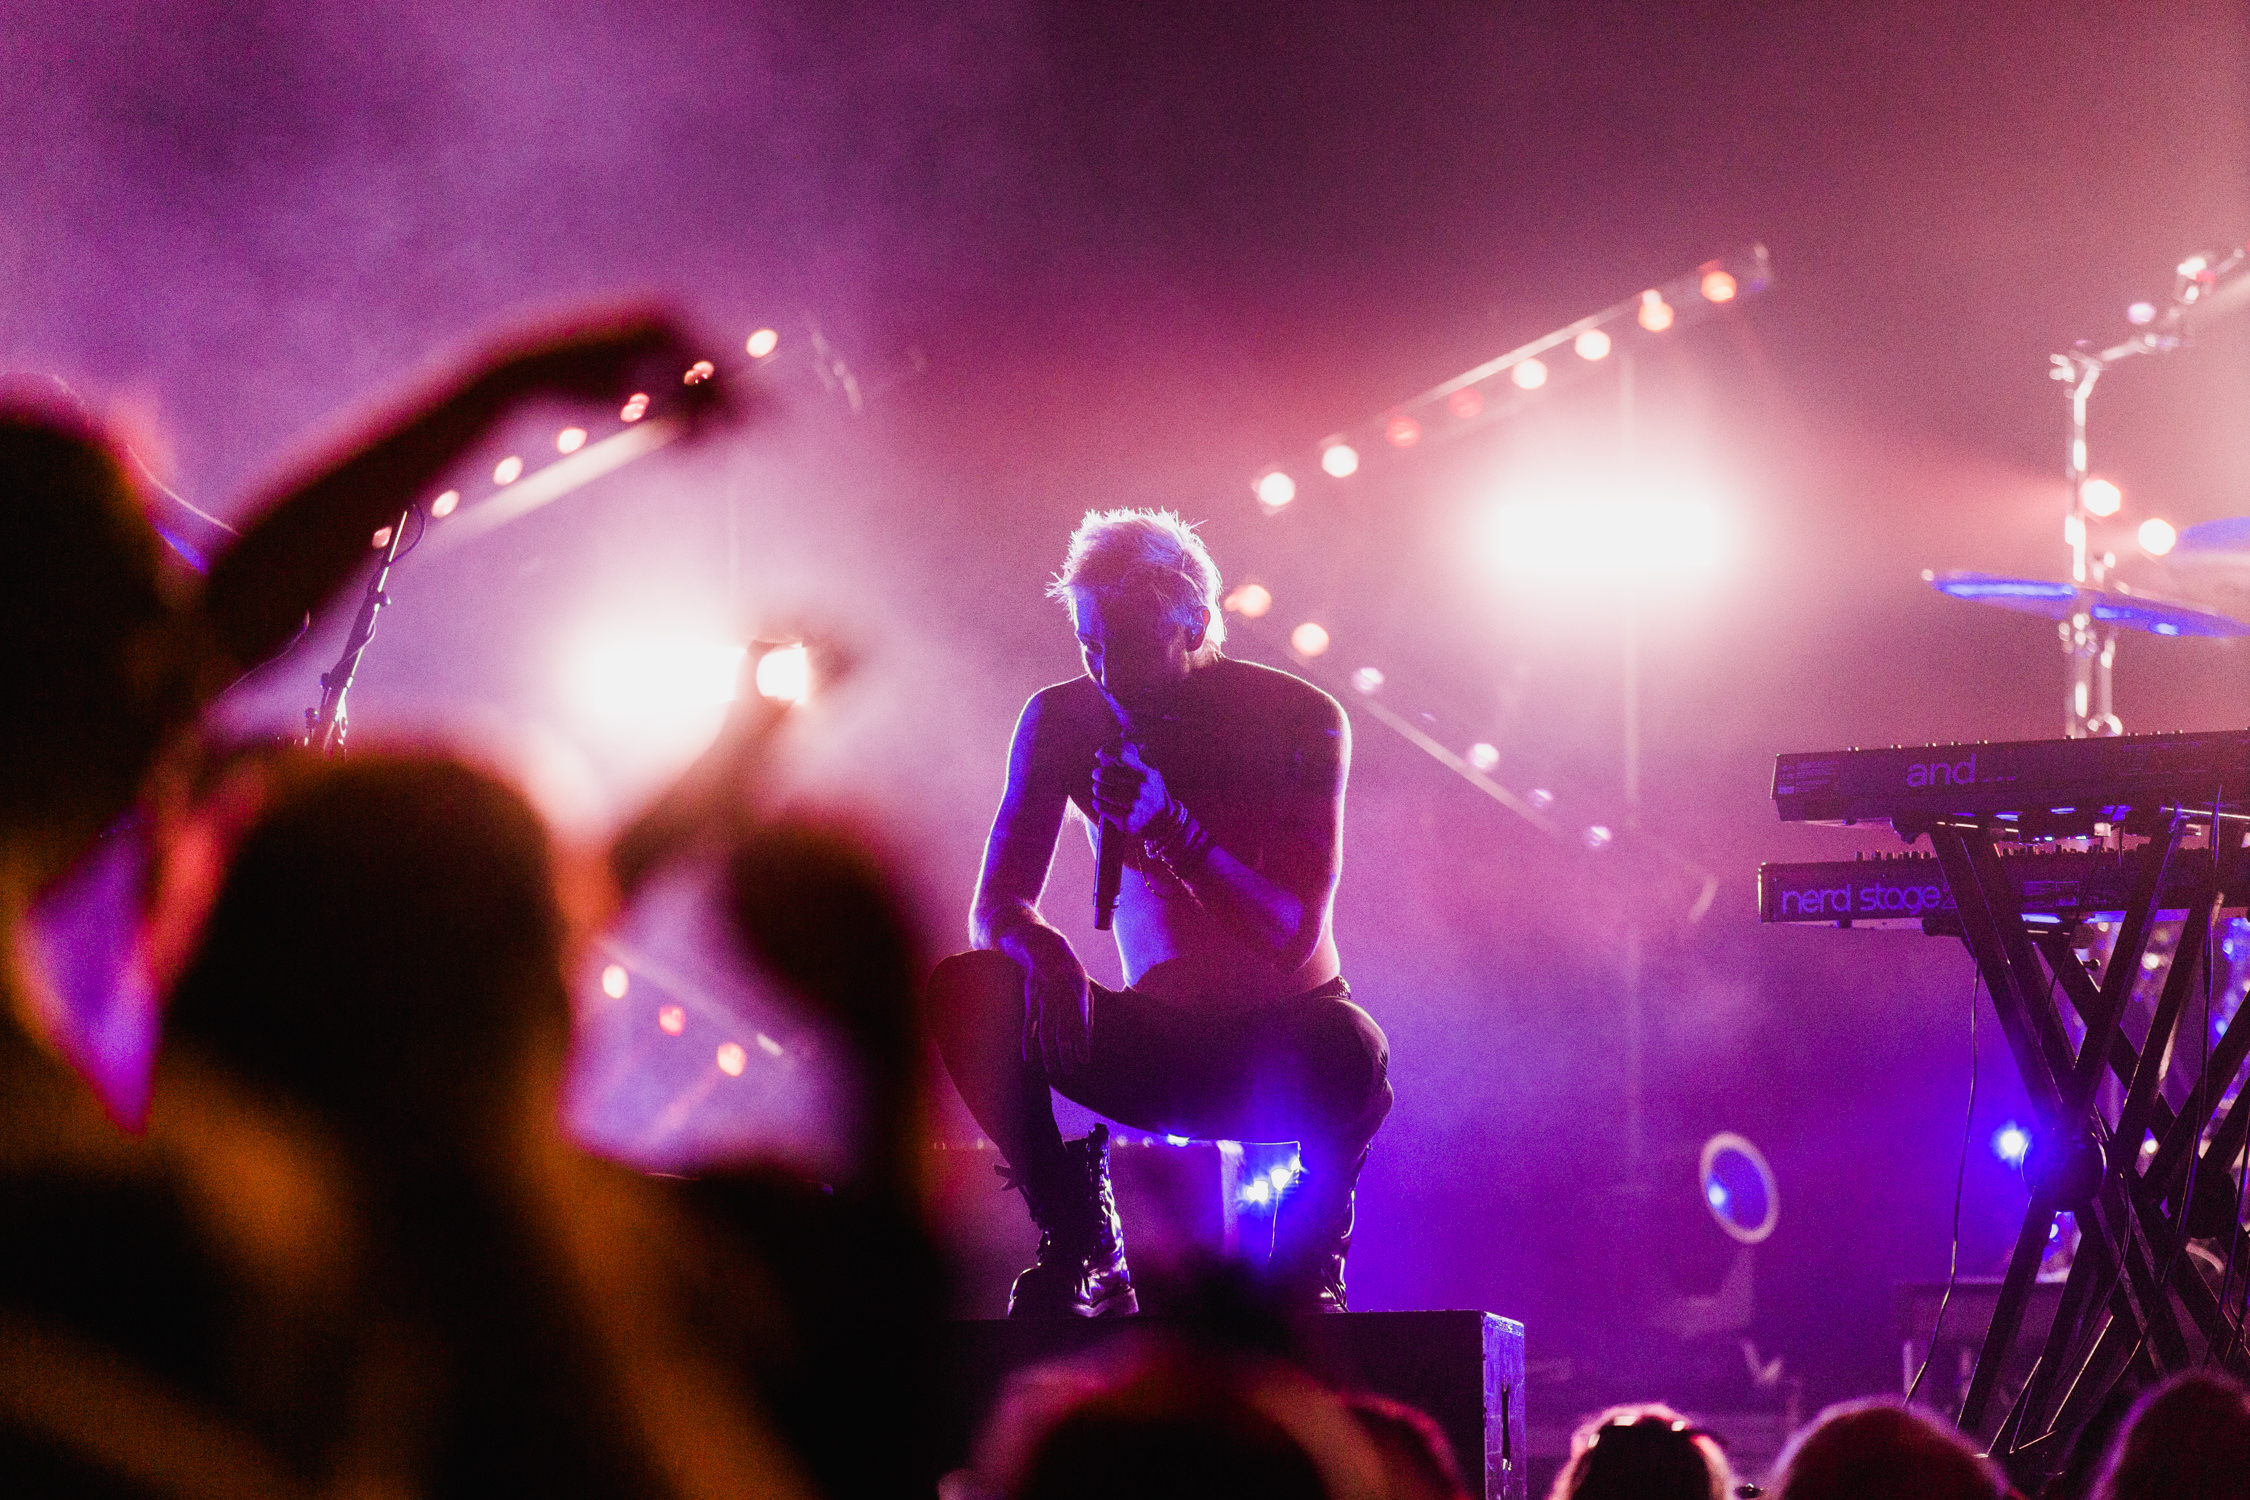 nick-concert-pink-backlighting-singer-walk-the-moon-AnnaLeeMedia